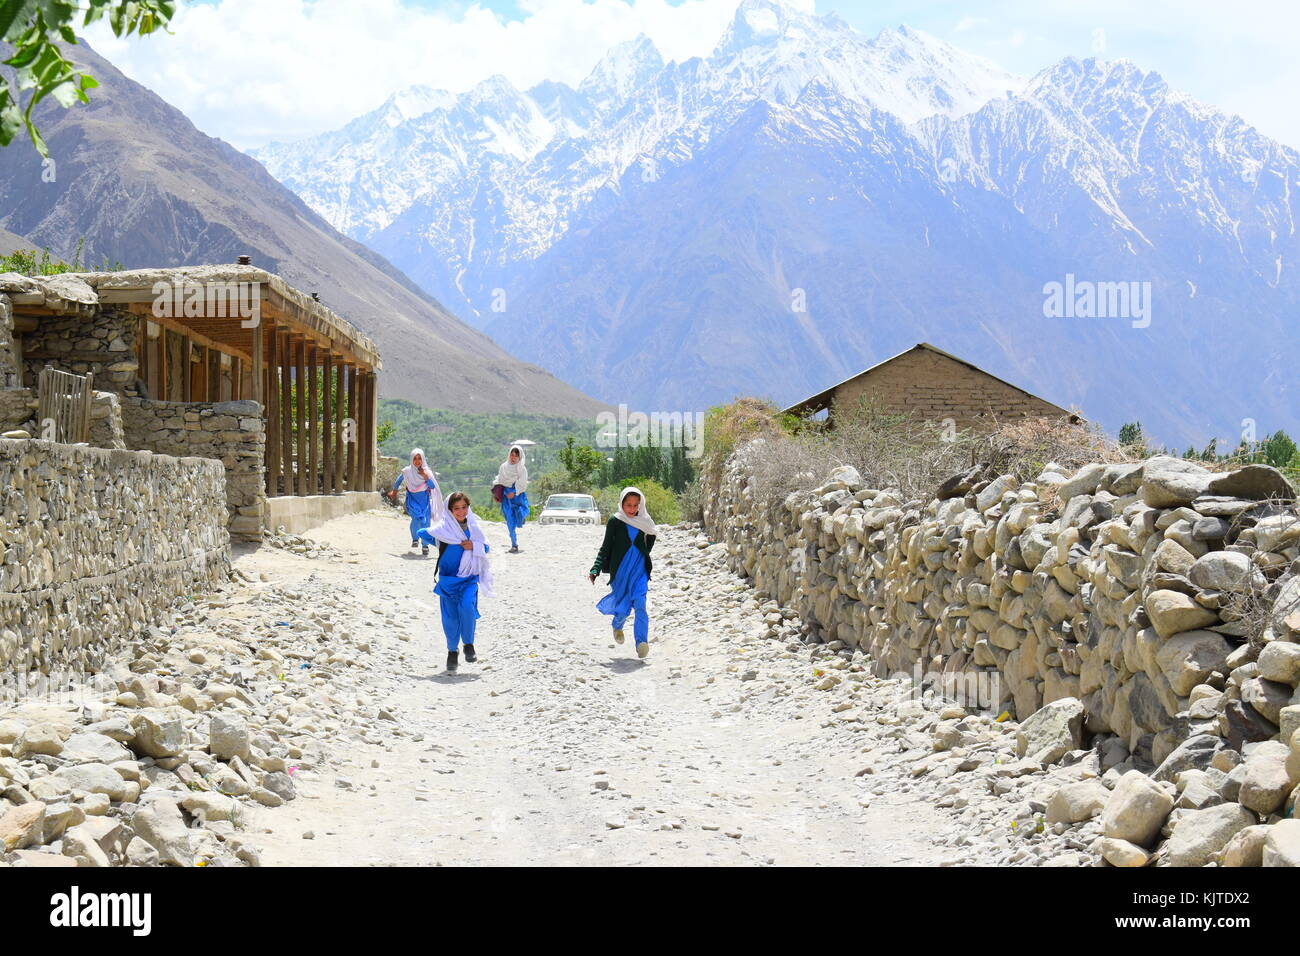 Happy local children on their way back to home after school. Playing and walking with joy, in the beautiful valley - Stock Image